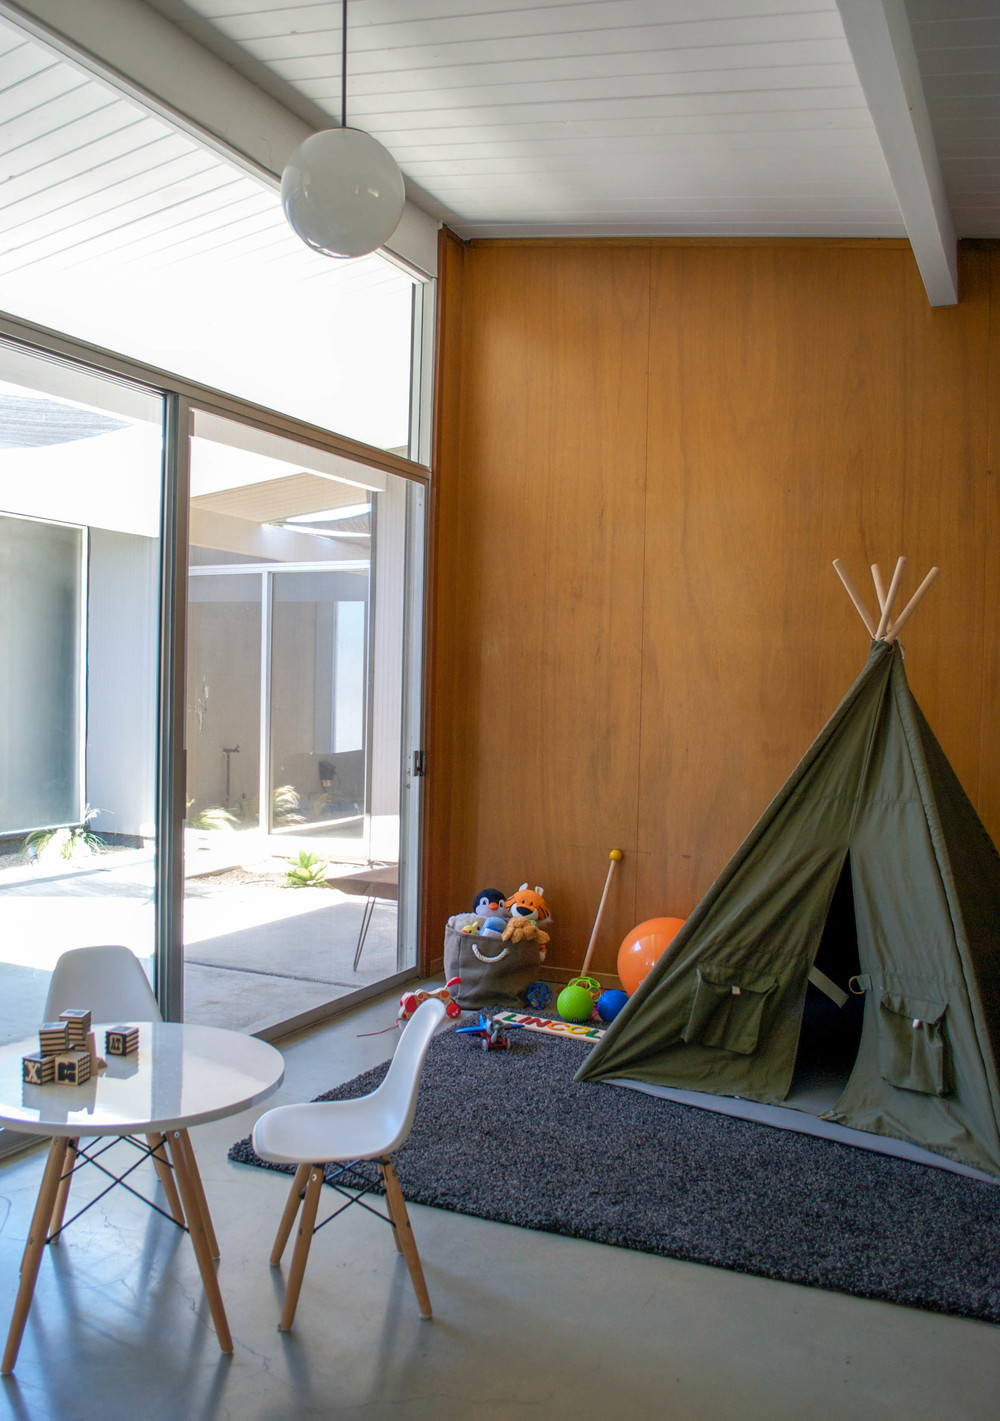 Lincoln's playroom is furnished with a modern table and chair set, as well as a spot to camp out and get cozy.